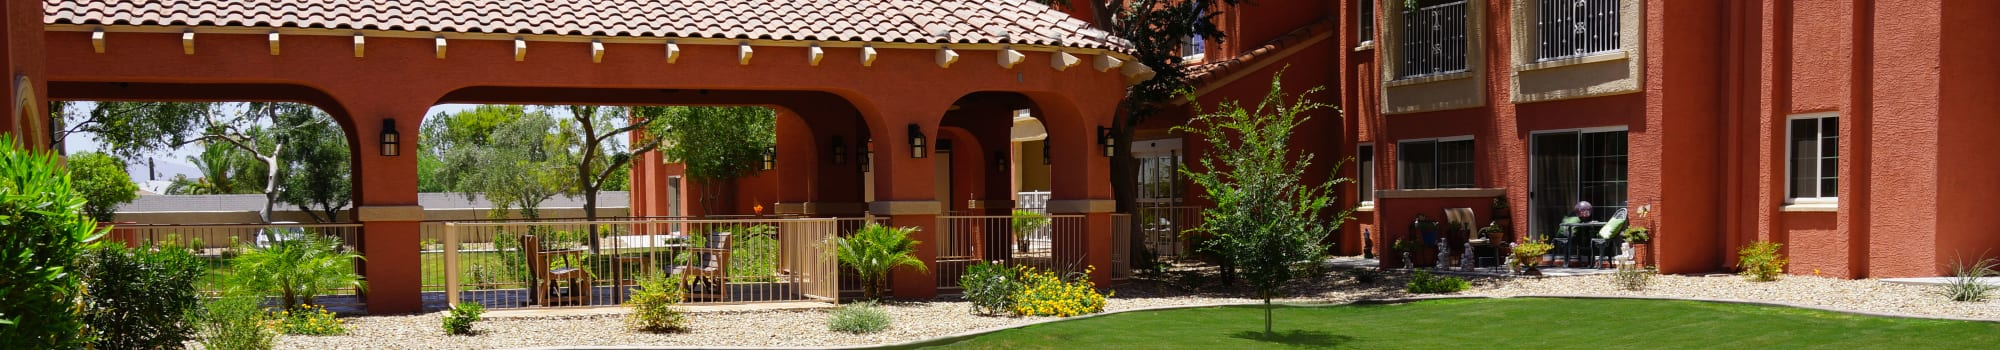 Dining at Casa Del Rio Senior Living in Peoria, Arizona